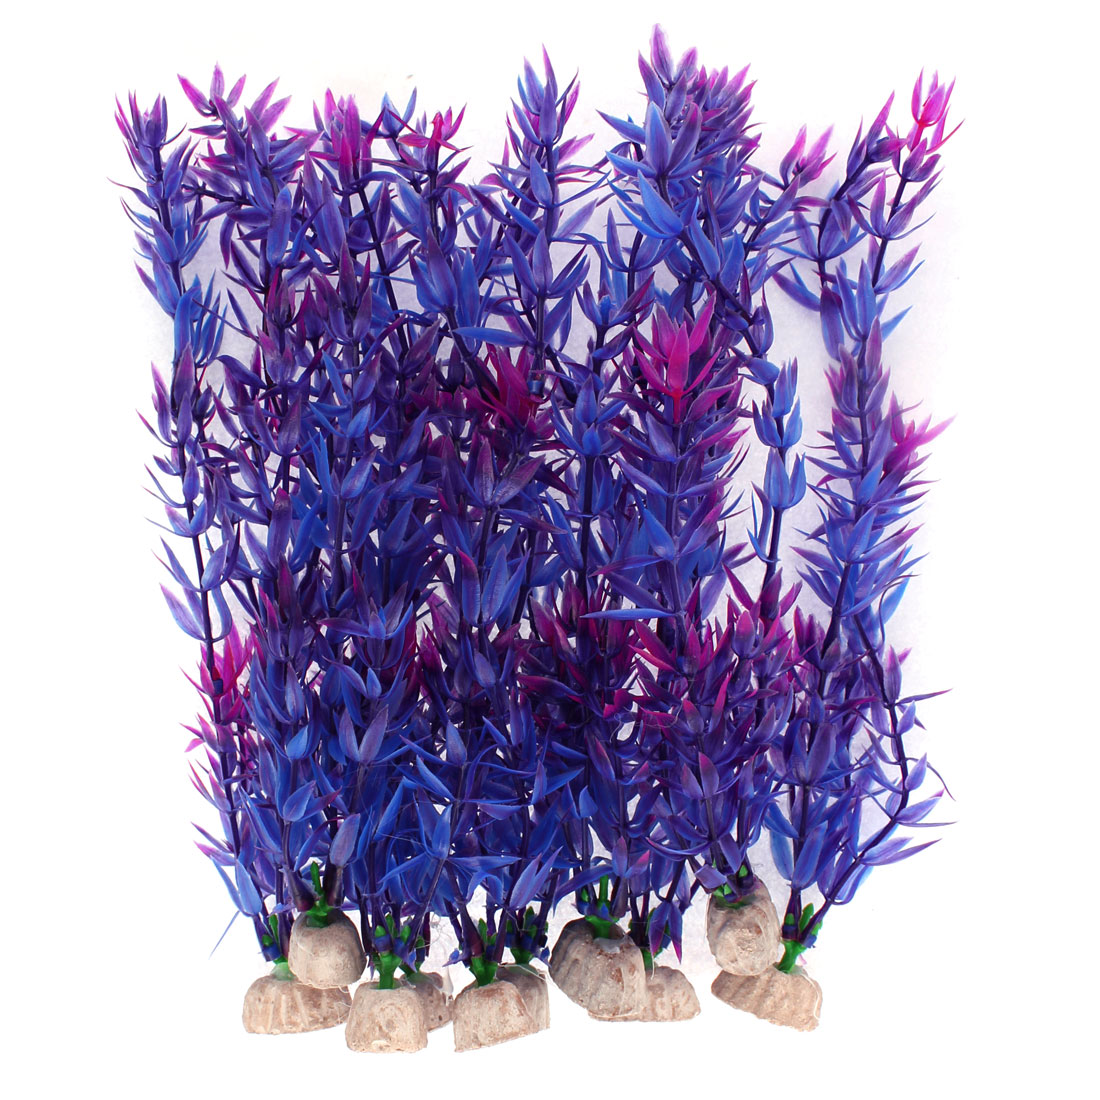 Aquarium Plastic Artificial Underwater Plant Purple Blue 10 Inch High 10pcs